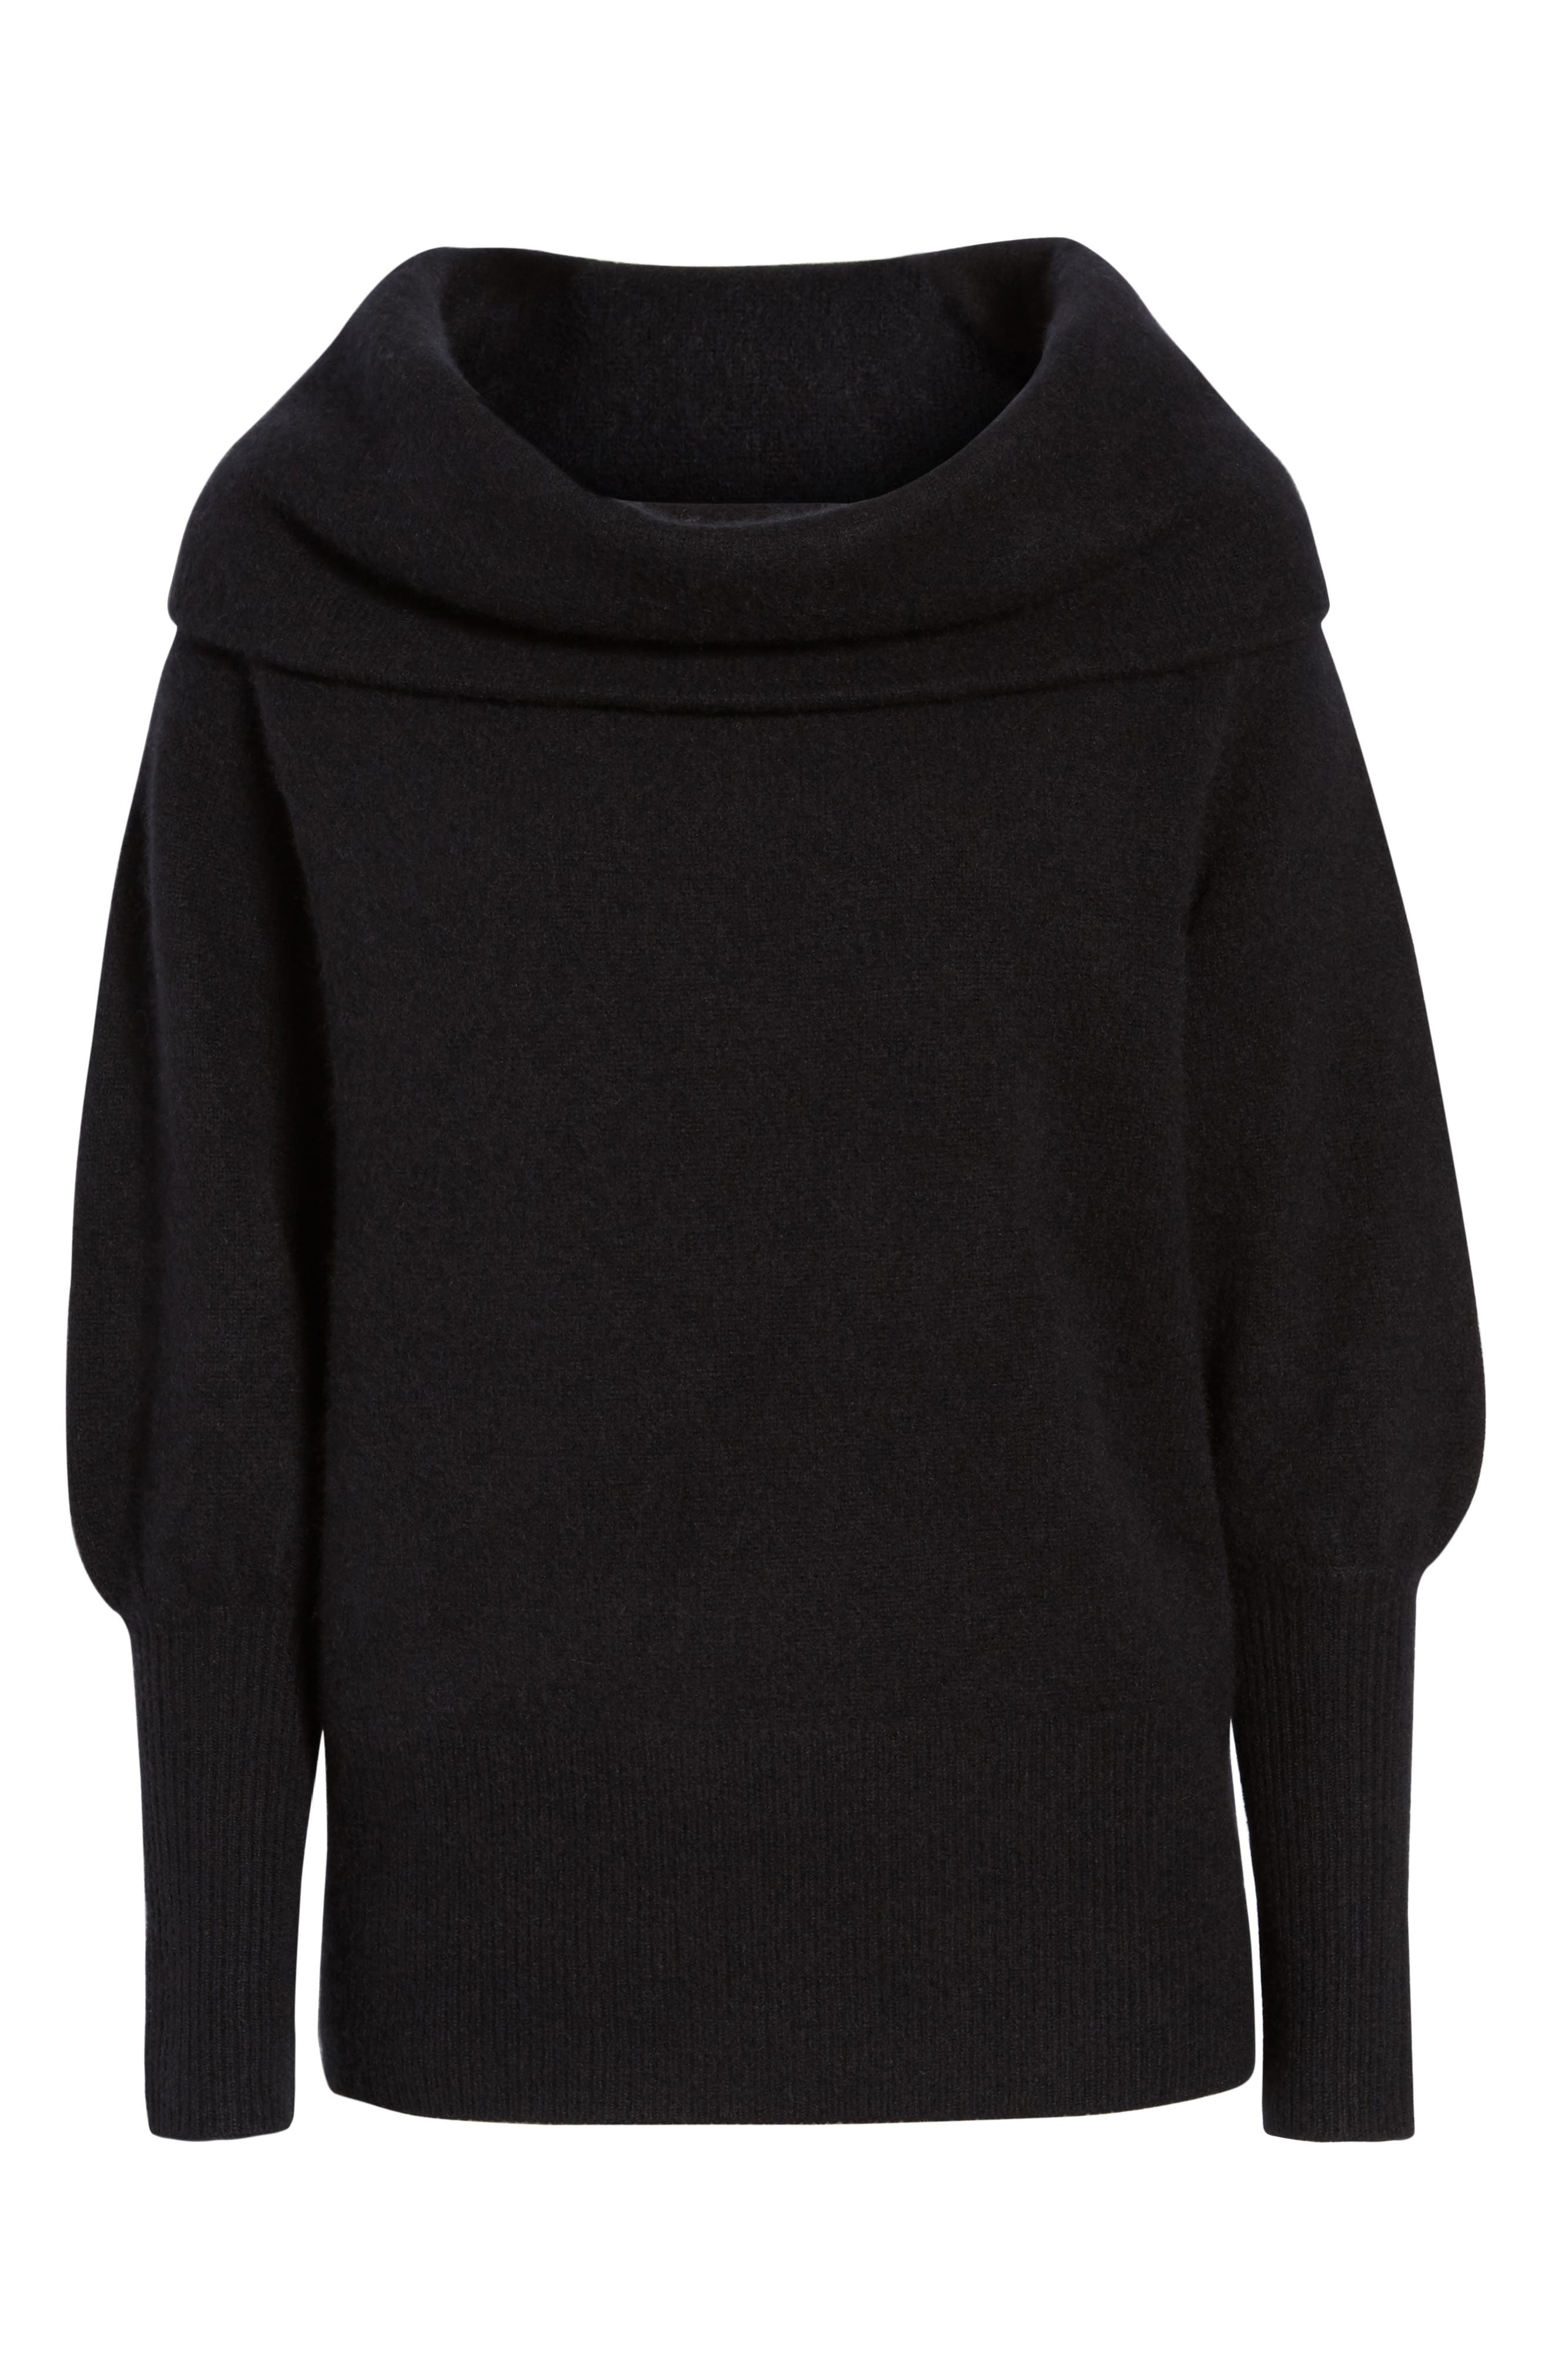 Convertible Neck Cashmere Sweater,                             Alternate thumbnail 6, color,                             001